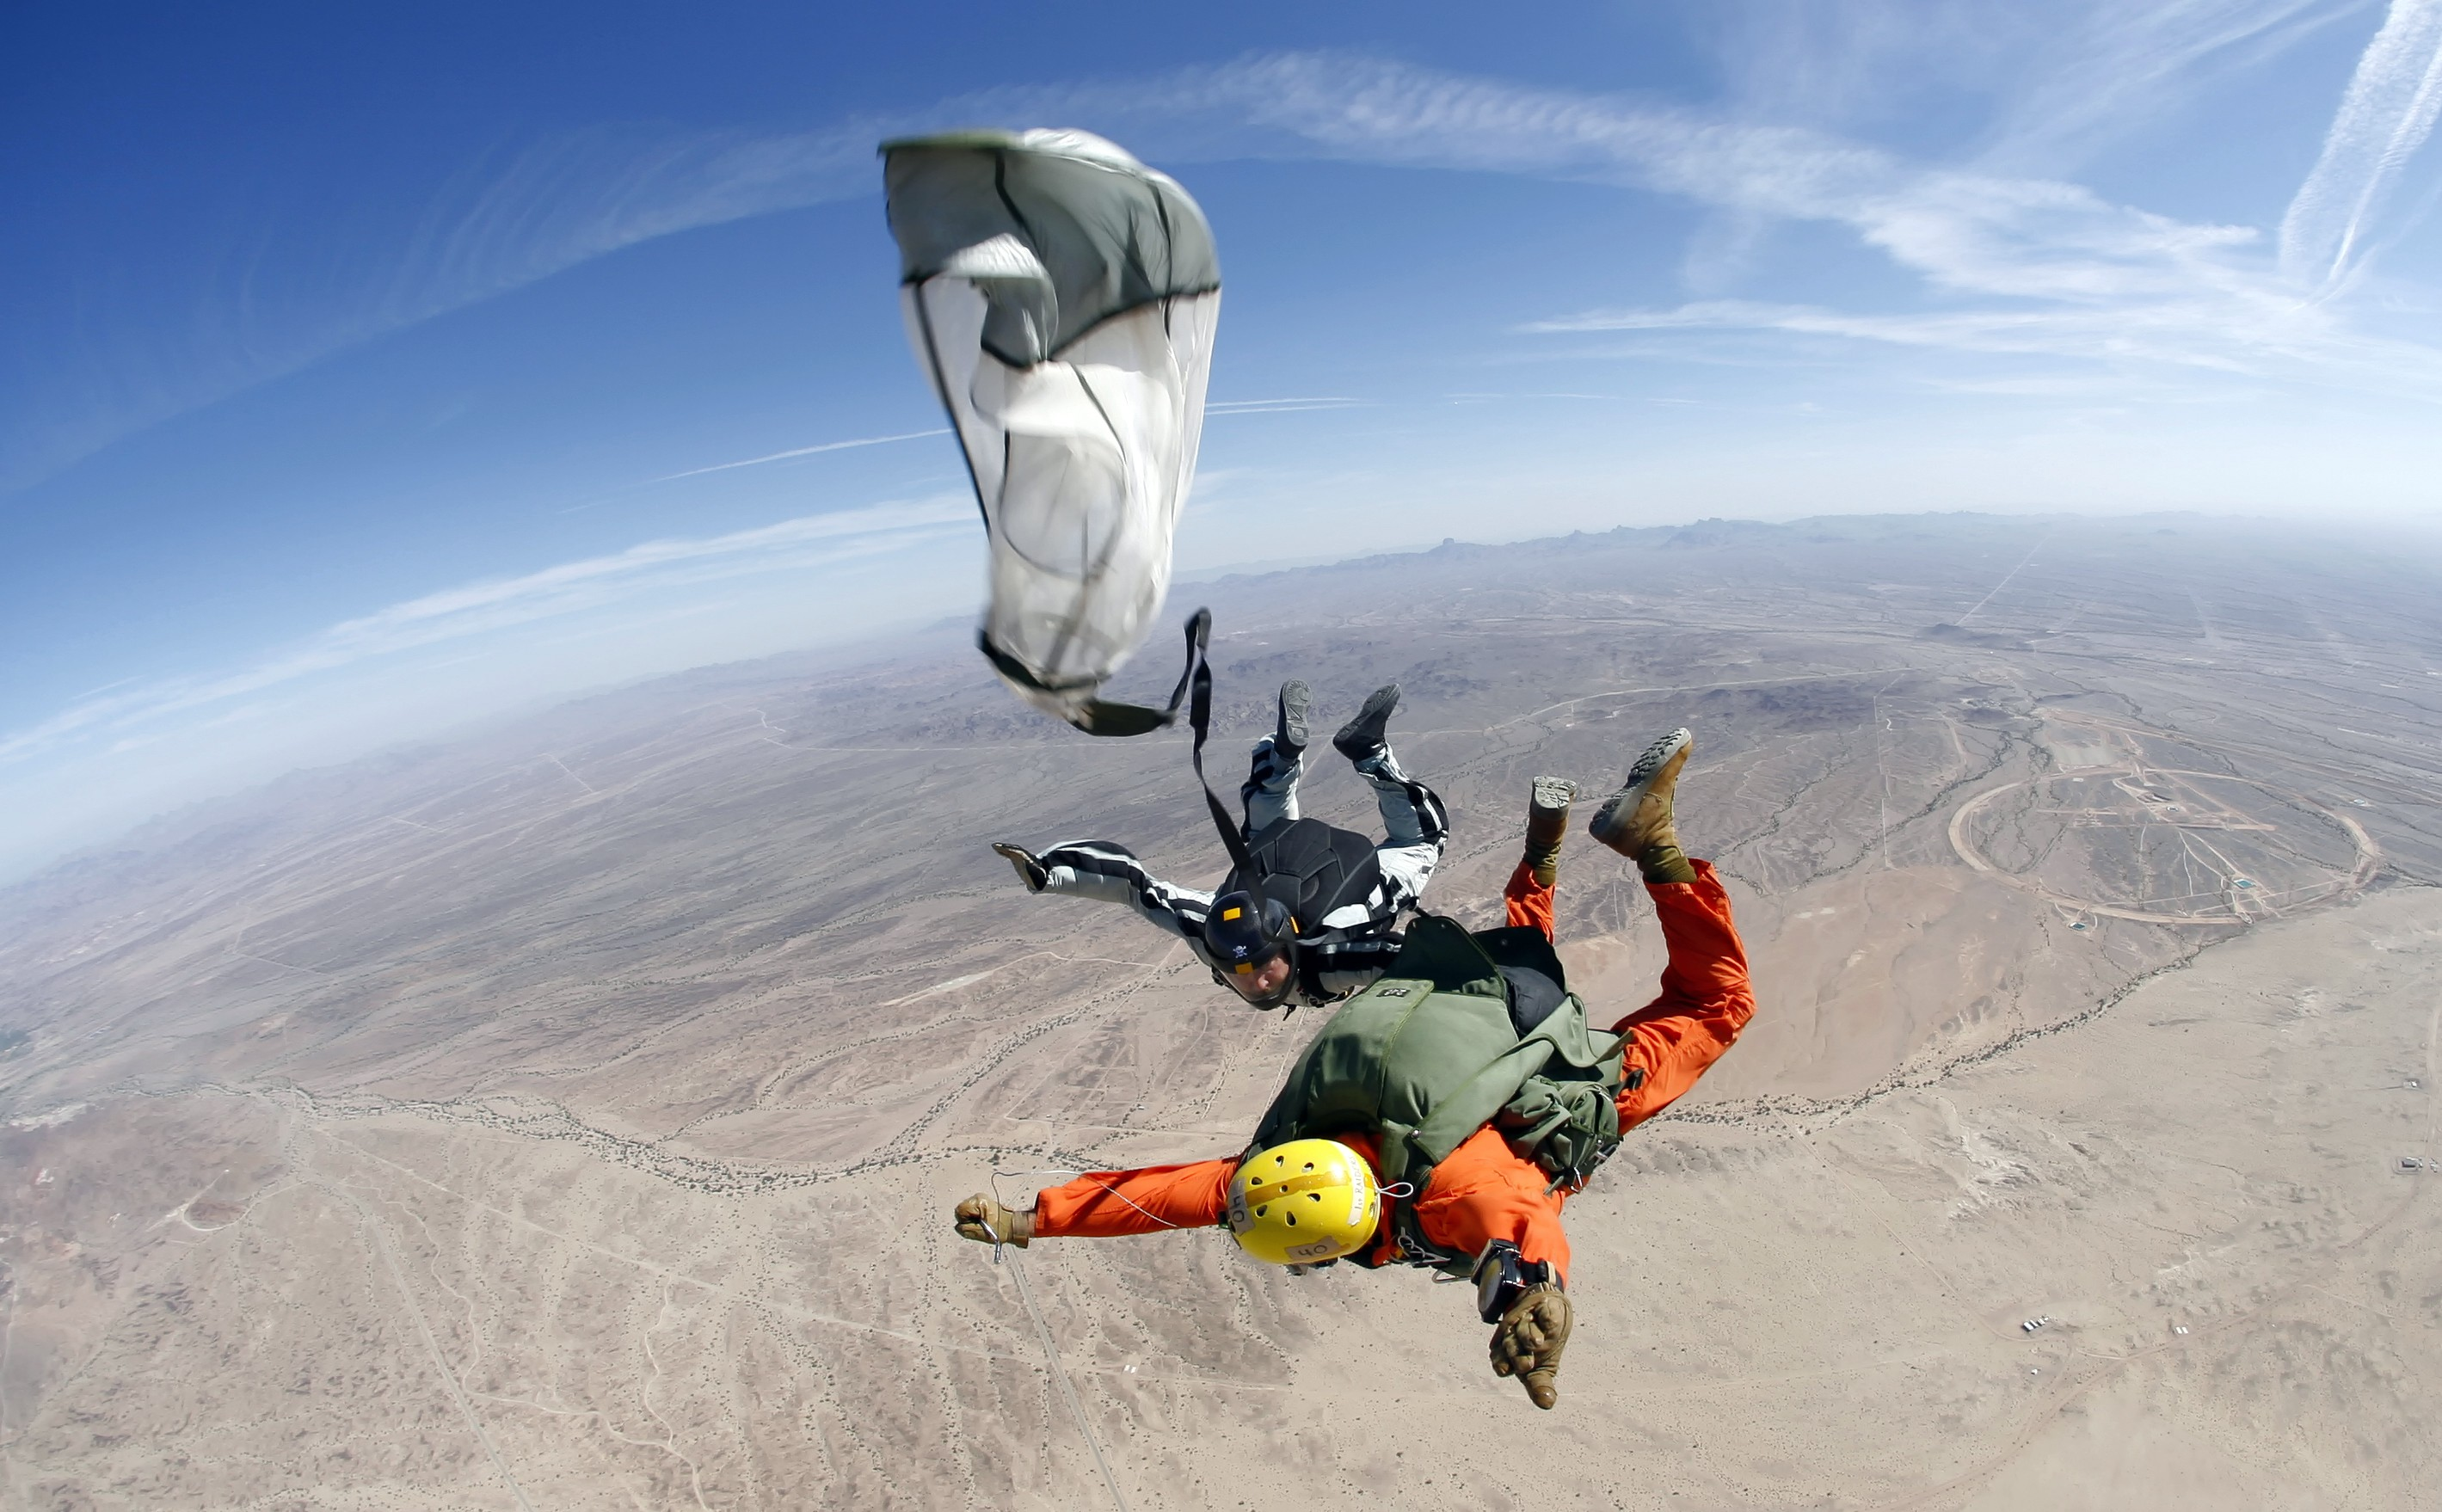 Free Fall Facebook Wallpaper Special Forces Qualification Course To Incorporate